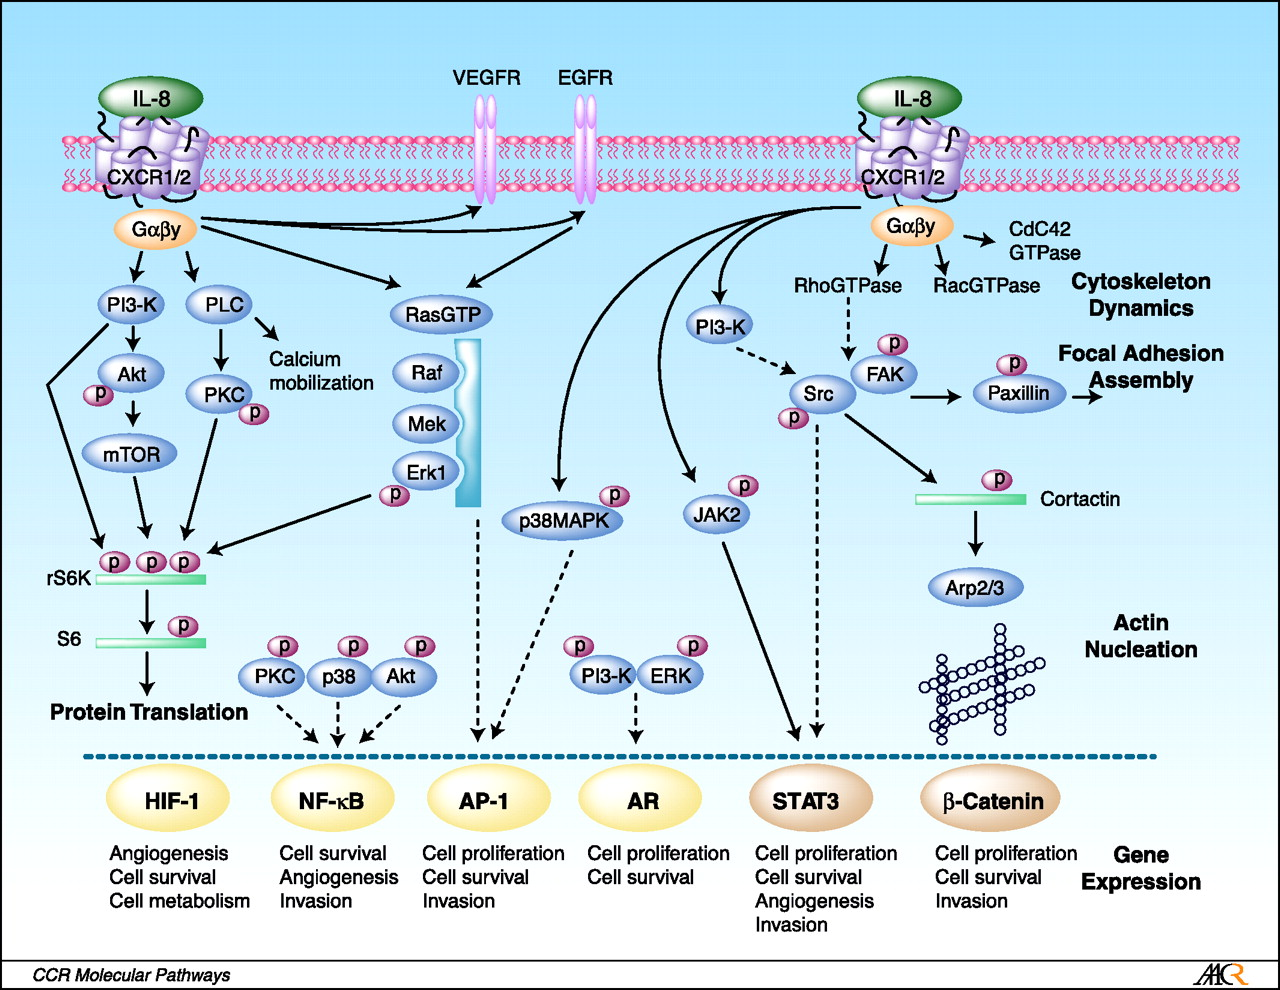 Characterized IL-8 signaling pathways. A schematic diagram illustrating the range of signaling pathways that are activated after stimulation of CXCR1 and/or CXCR2 receptors with IL-8. After activation of heterotrimeric small G proteins, IL-8 signaling promotes activation of the primary effectors phosphatidyl-inositol-3-kinase or phospholipase C, promoting the activation of Akt, PKC, calcium mobilization and/or MAPK signaling cascades. These signaling pathways have been shown to promote protein translation (left) and regulate the activity of a range of transcription factors (bottom). Solid gold lines, transcription factors whose activity has been shown to be positively regulated by IL-8 signaling using various reporter assays. In the case of signal transducers and activators of transcription 3 (STAT3) and β-catenin, IL-8 signaling has been shown to promote nuclear translocation of these factors; however, transcriptional activation of either factor remains to be shown. Dashed lines, the putative pathways through which IL-8 signaling regulates transcription factor activity. In addition, IL-8 signaling activates members of the RhoGTPase family and activates a number of nonreceptor tyrosine kinases (e.g., Src family kinases and FAK) that regulate the architecture of the cell cytoskeleton and its interaction with the surrounding extracellular environment (right). http://clincancerres.aacrjournals.org/content/14/21/6735